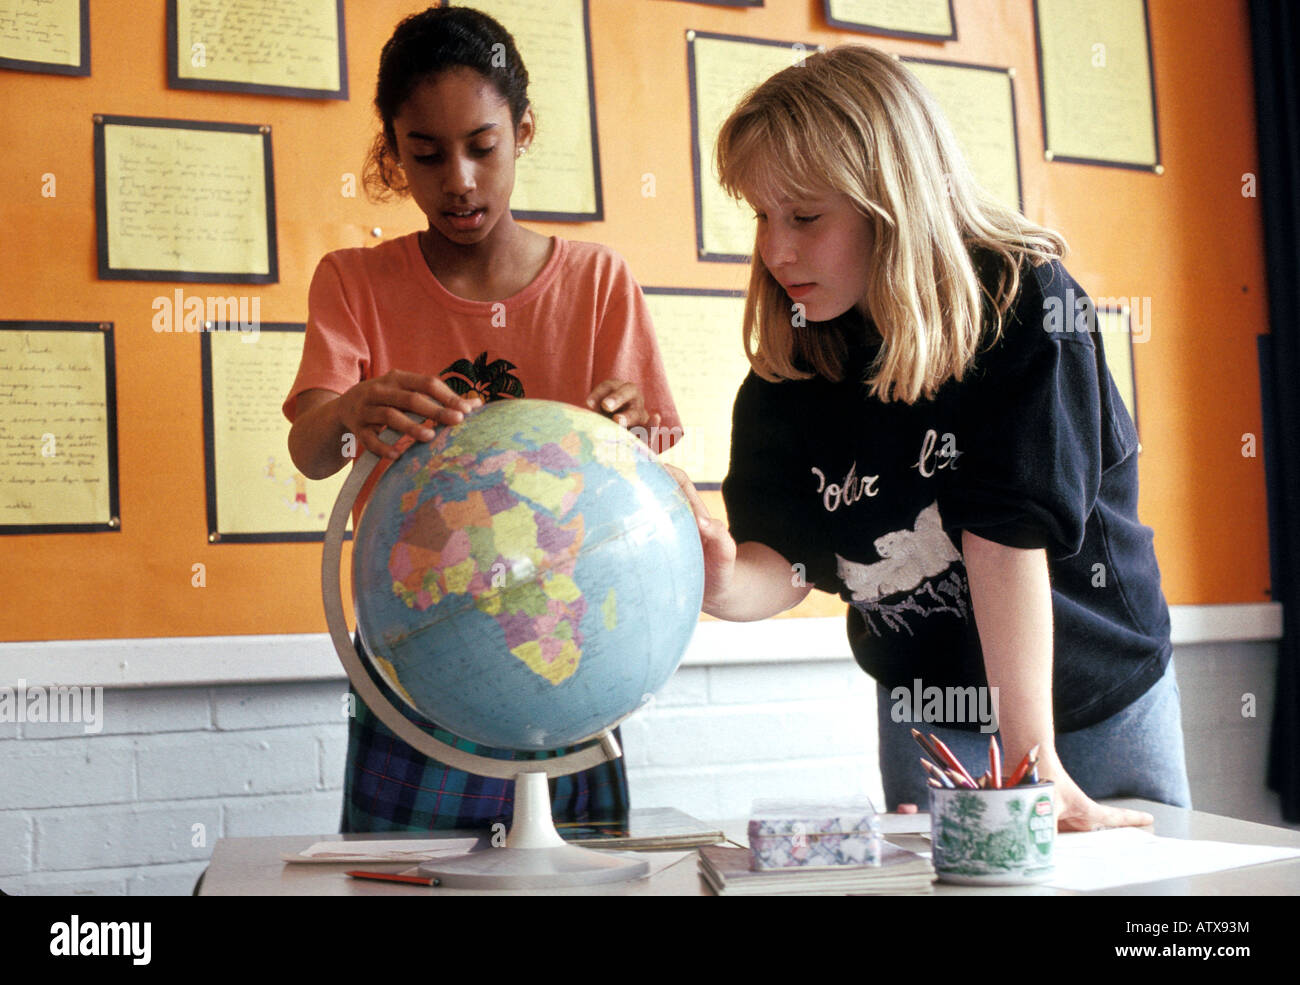 Secondary school children learning geography by studying a world globe - Stock Image